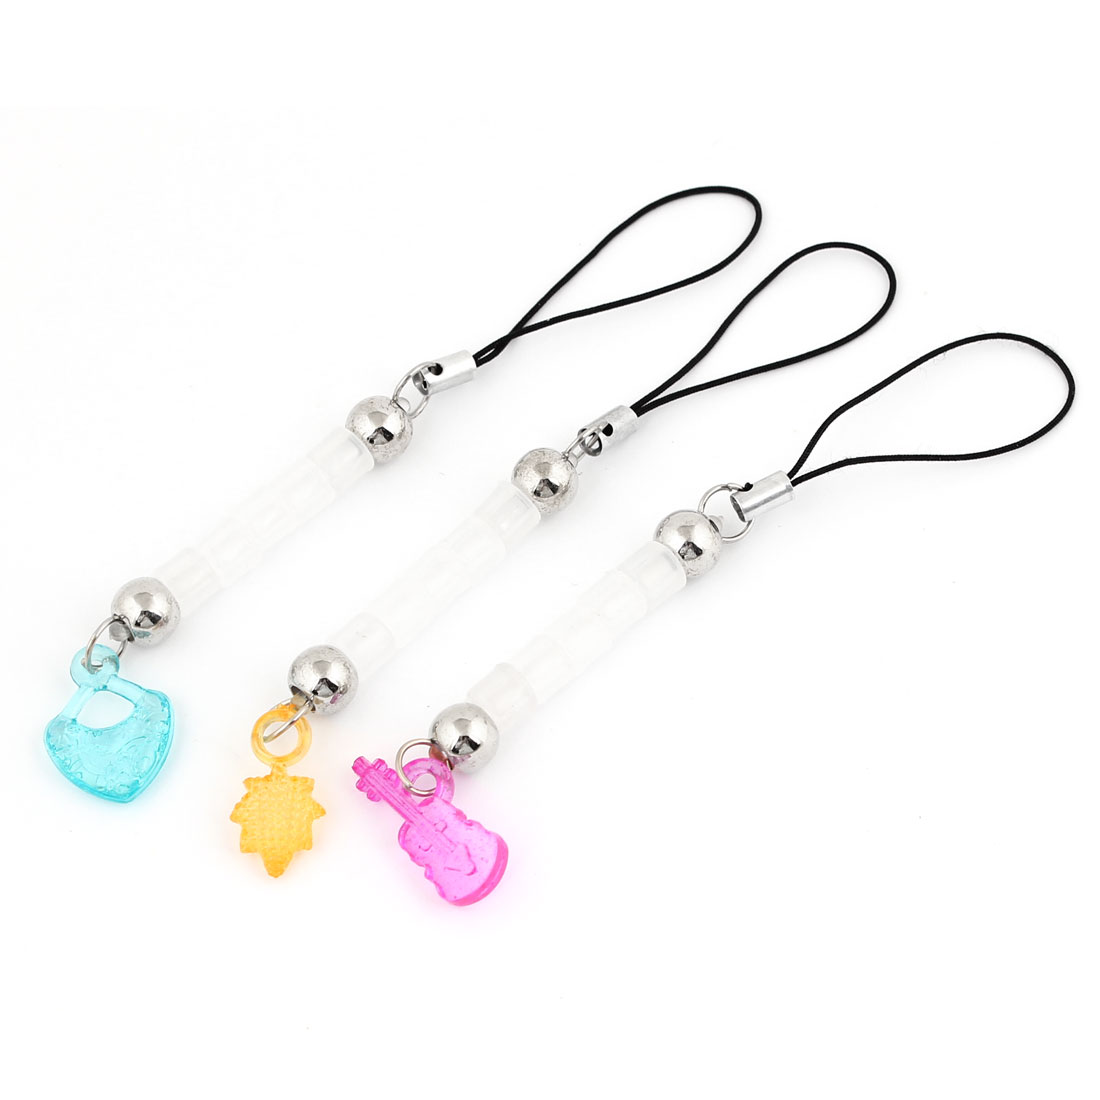 3 Pcs Assorted Pendant Cell Phone Mp3 Mp4 Strap Chain Charm